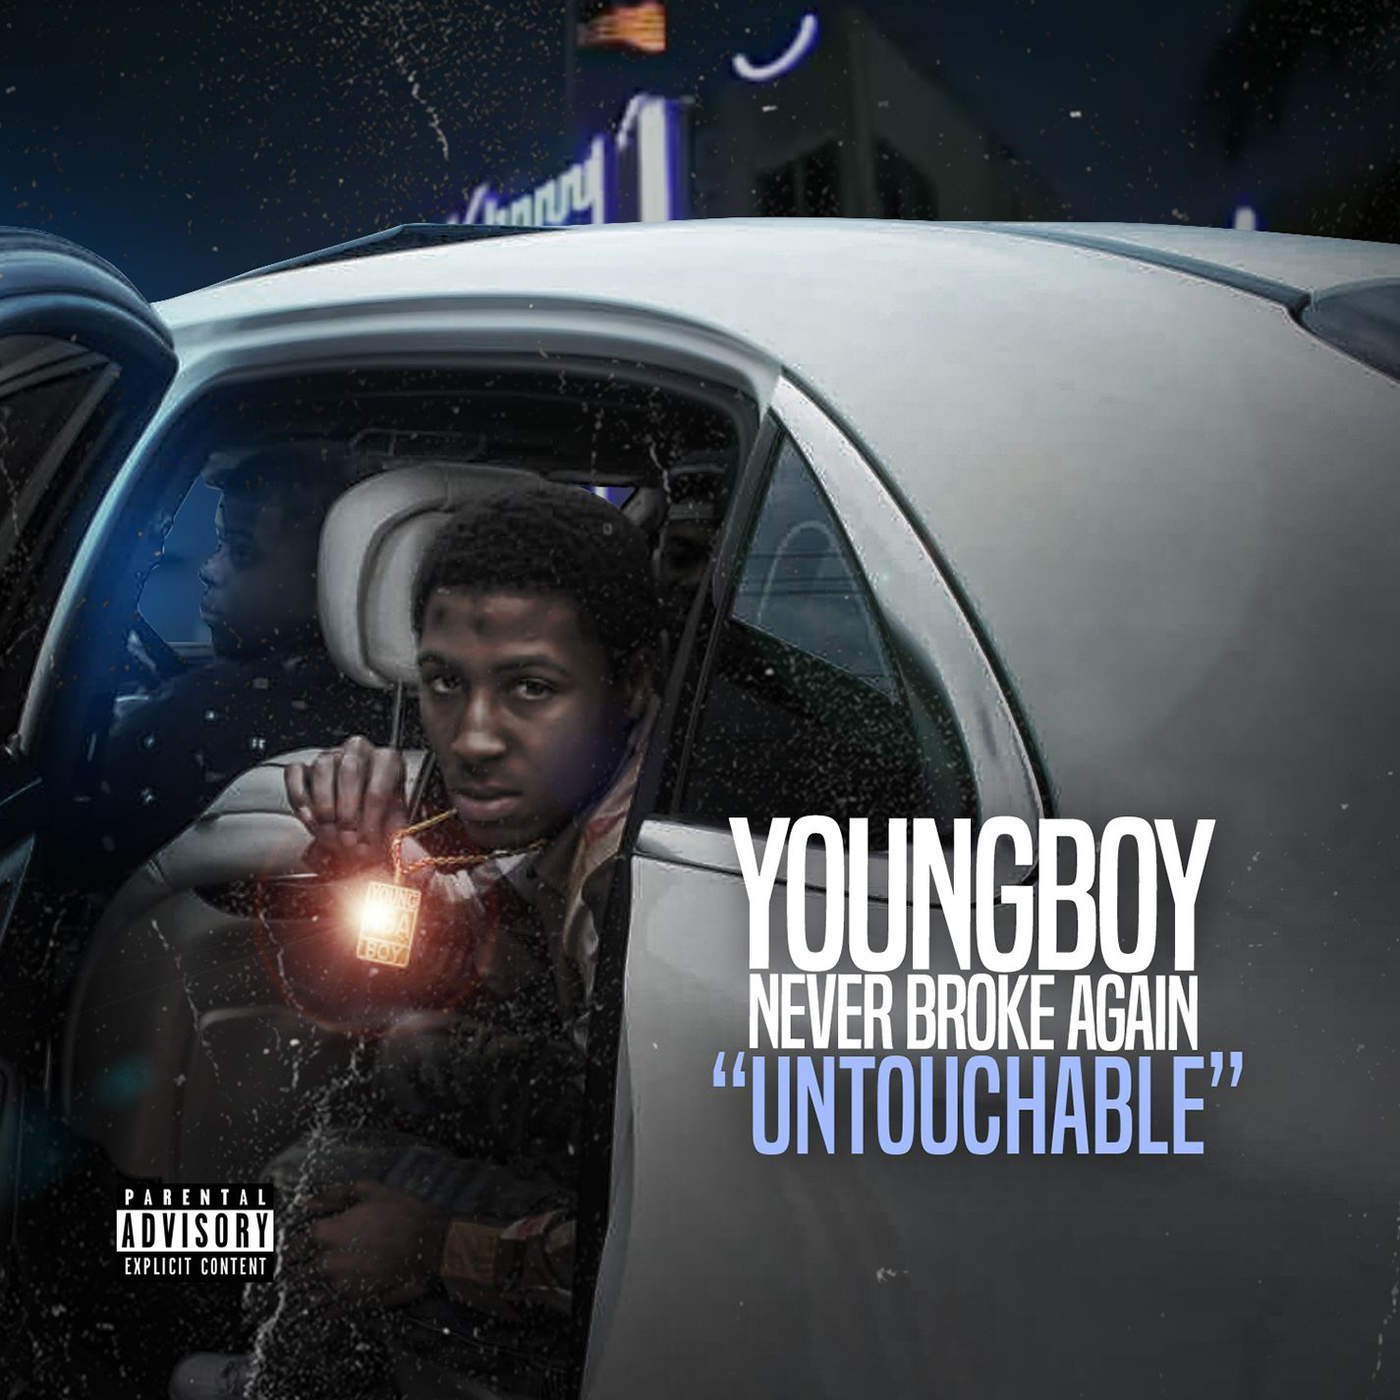 Youngboy Never Broke Again - Untouchable - Single Cover